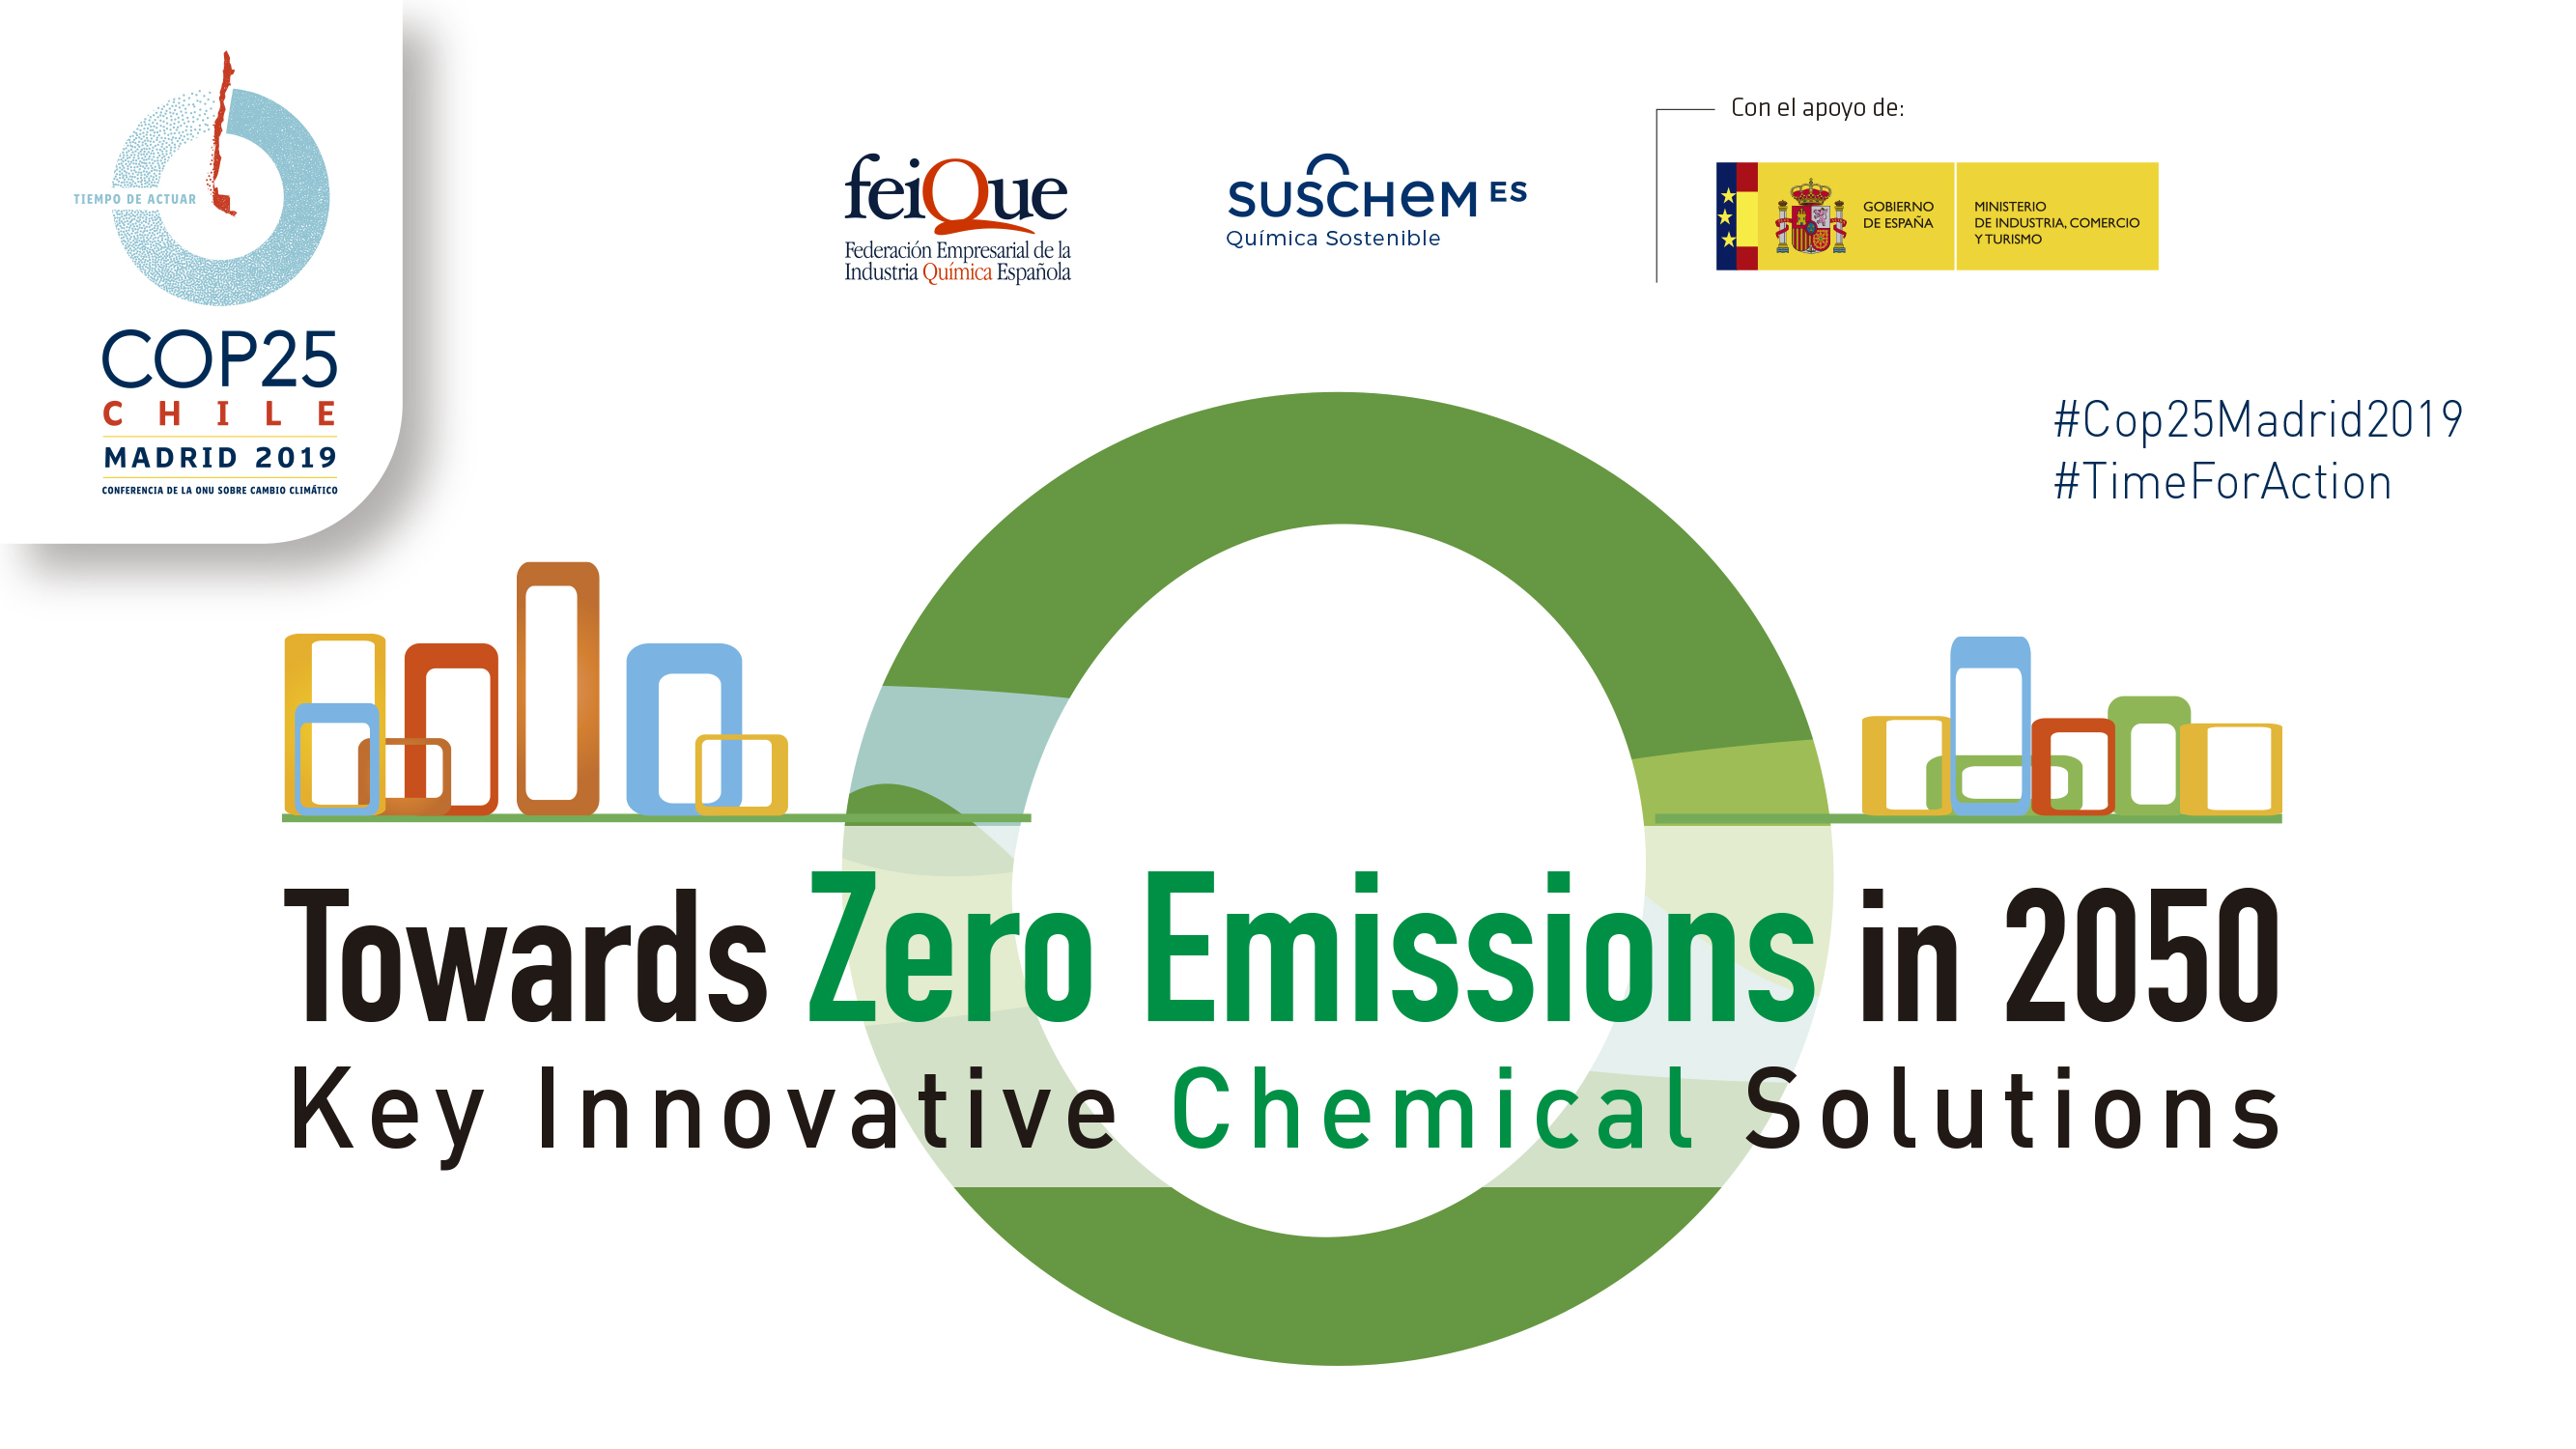 Towards Zero Emissions in 2050. Key Innovative Chemical Solutions